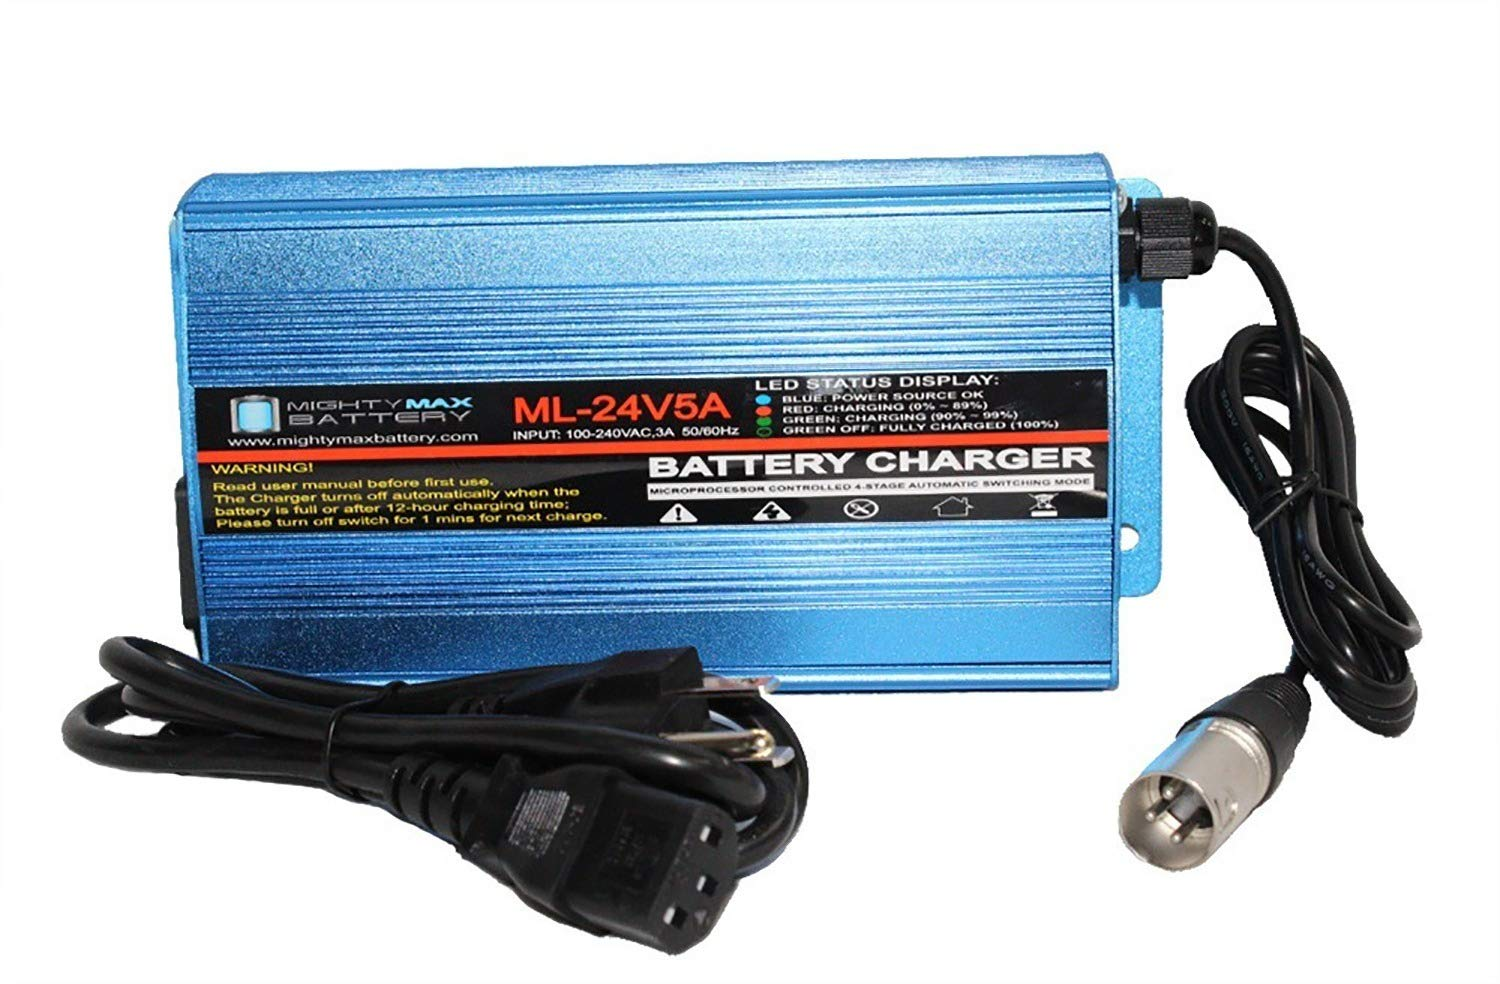 Mighty Max Battery 24V 5Amp 3 Stage XLR Charger for Pride Mobility Hurricane PMV500/5001 Brand Product